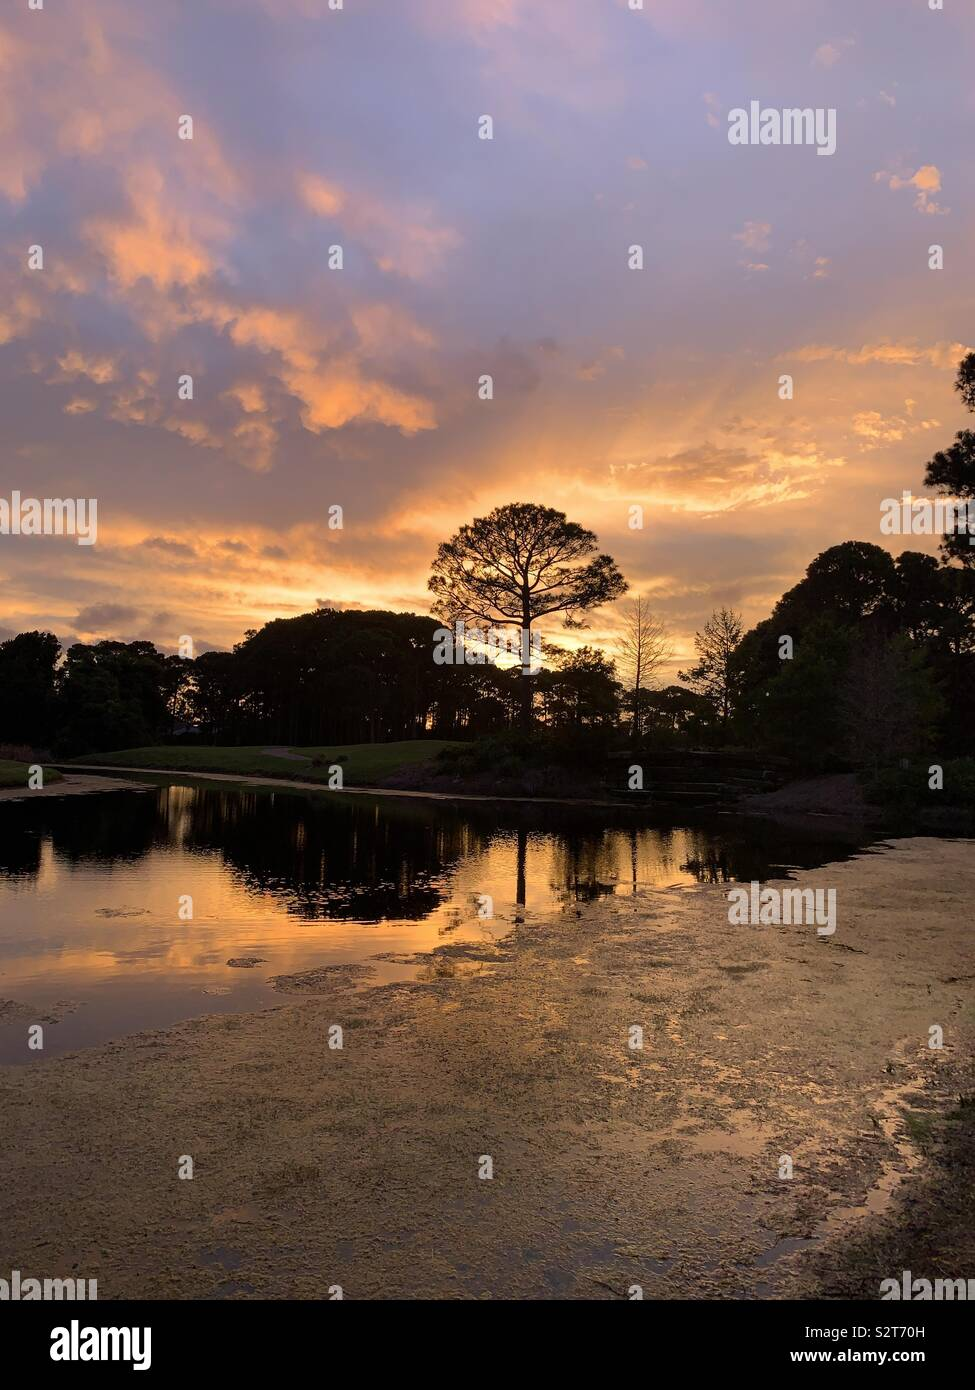 Colorful sunset on the lake with tree silhouettes and reflections on the water - Stock Image